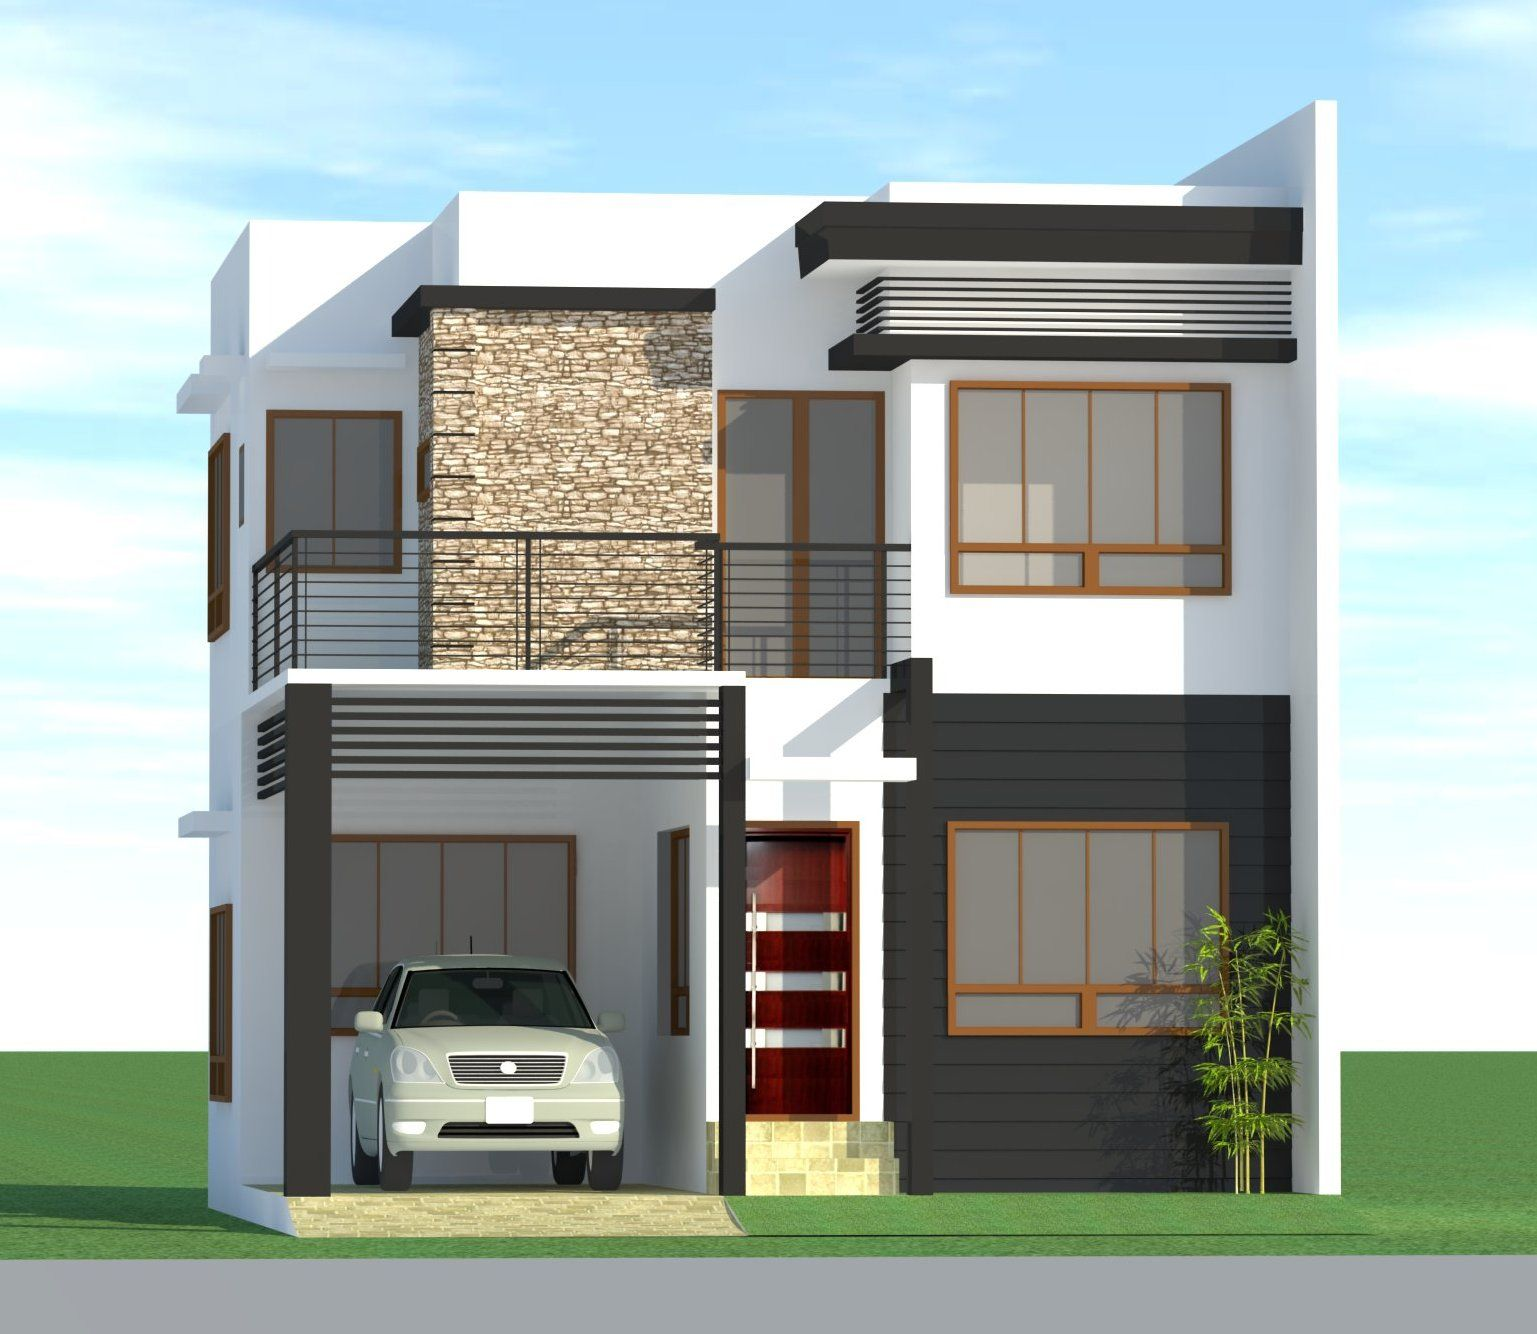 Philippines House Design Images 3 Home Design Ideas: design of modern houses in philippines